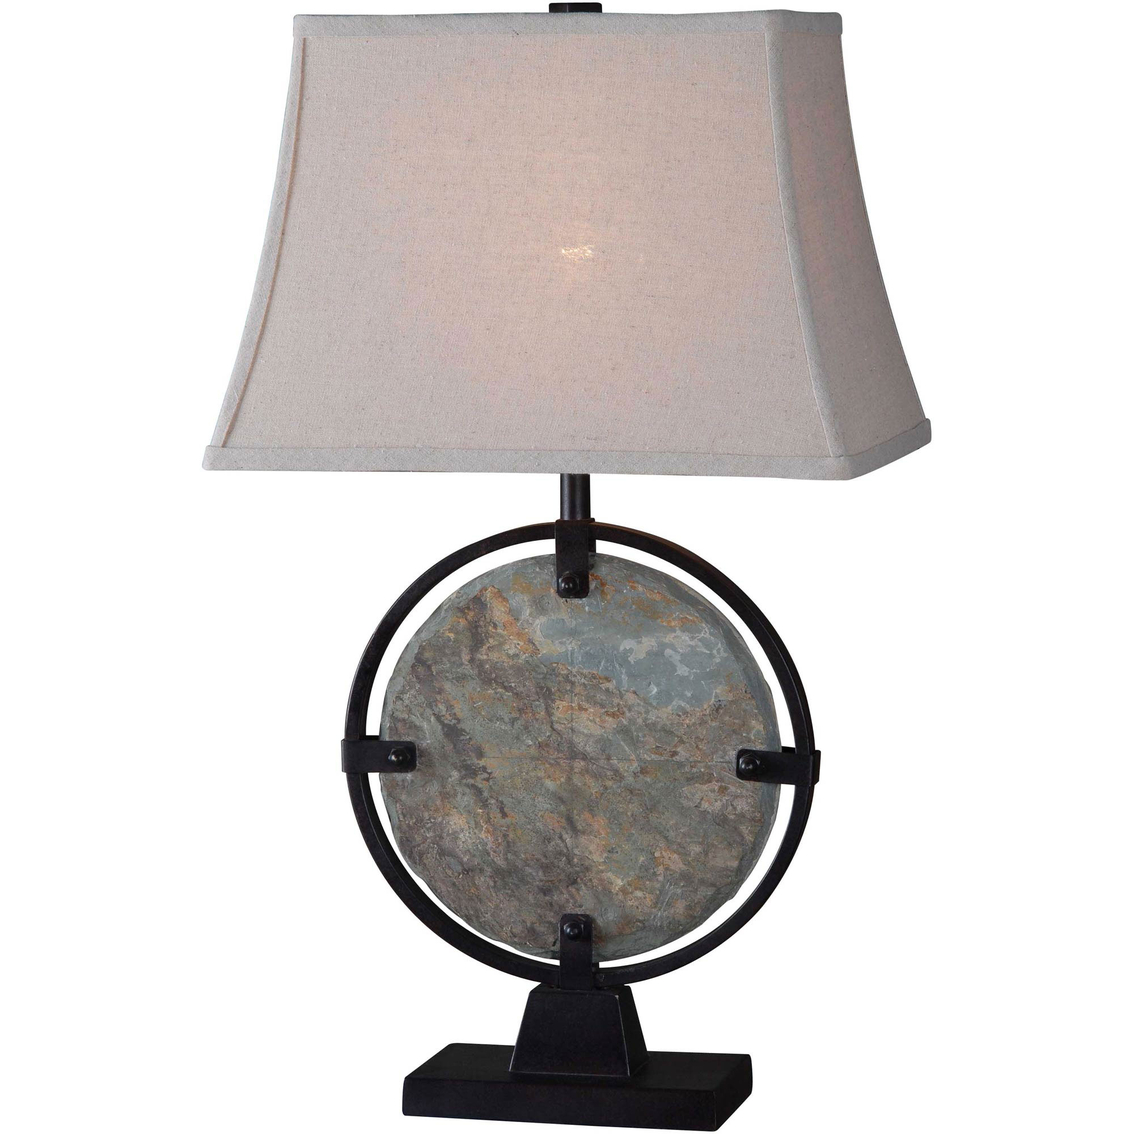 Kenroy Home Suspension Table Lamp